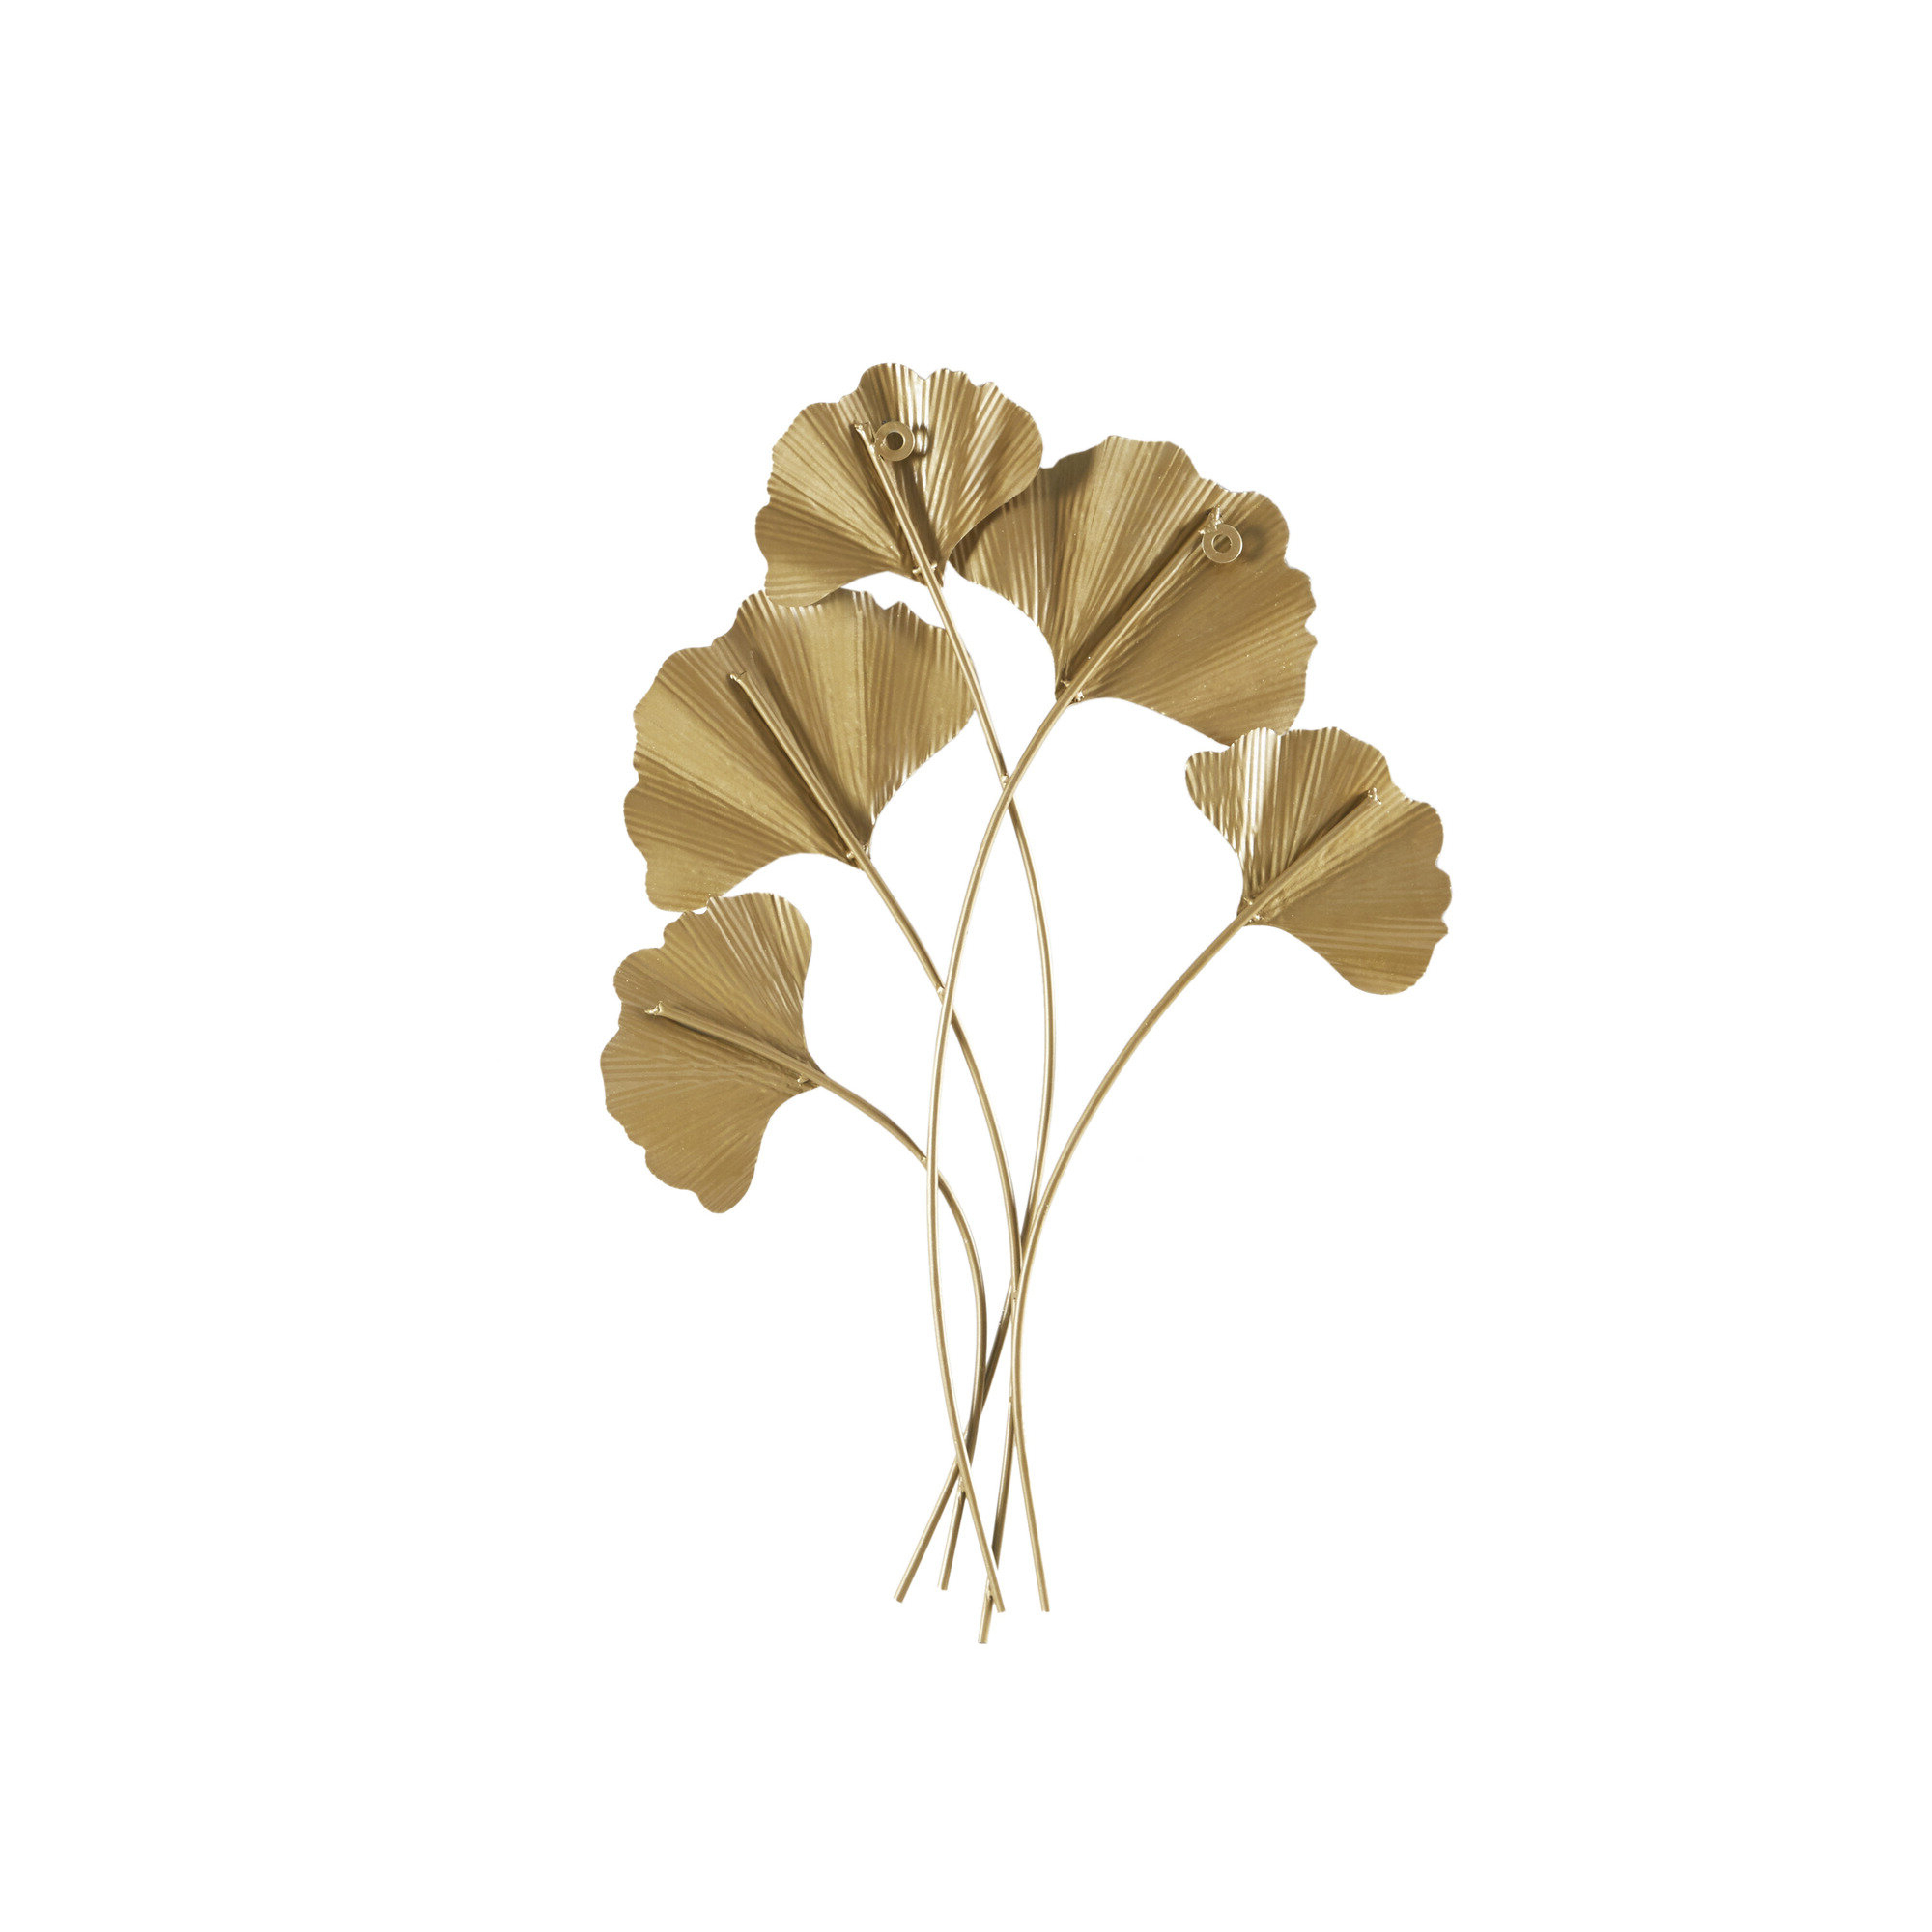 Most Current Celeste Gold Foil Ginkgo Leaf Wall Art In Ginkgo Leaf Metal Wall Décor By Winston Porter (View 11 of 20)